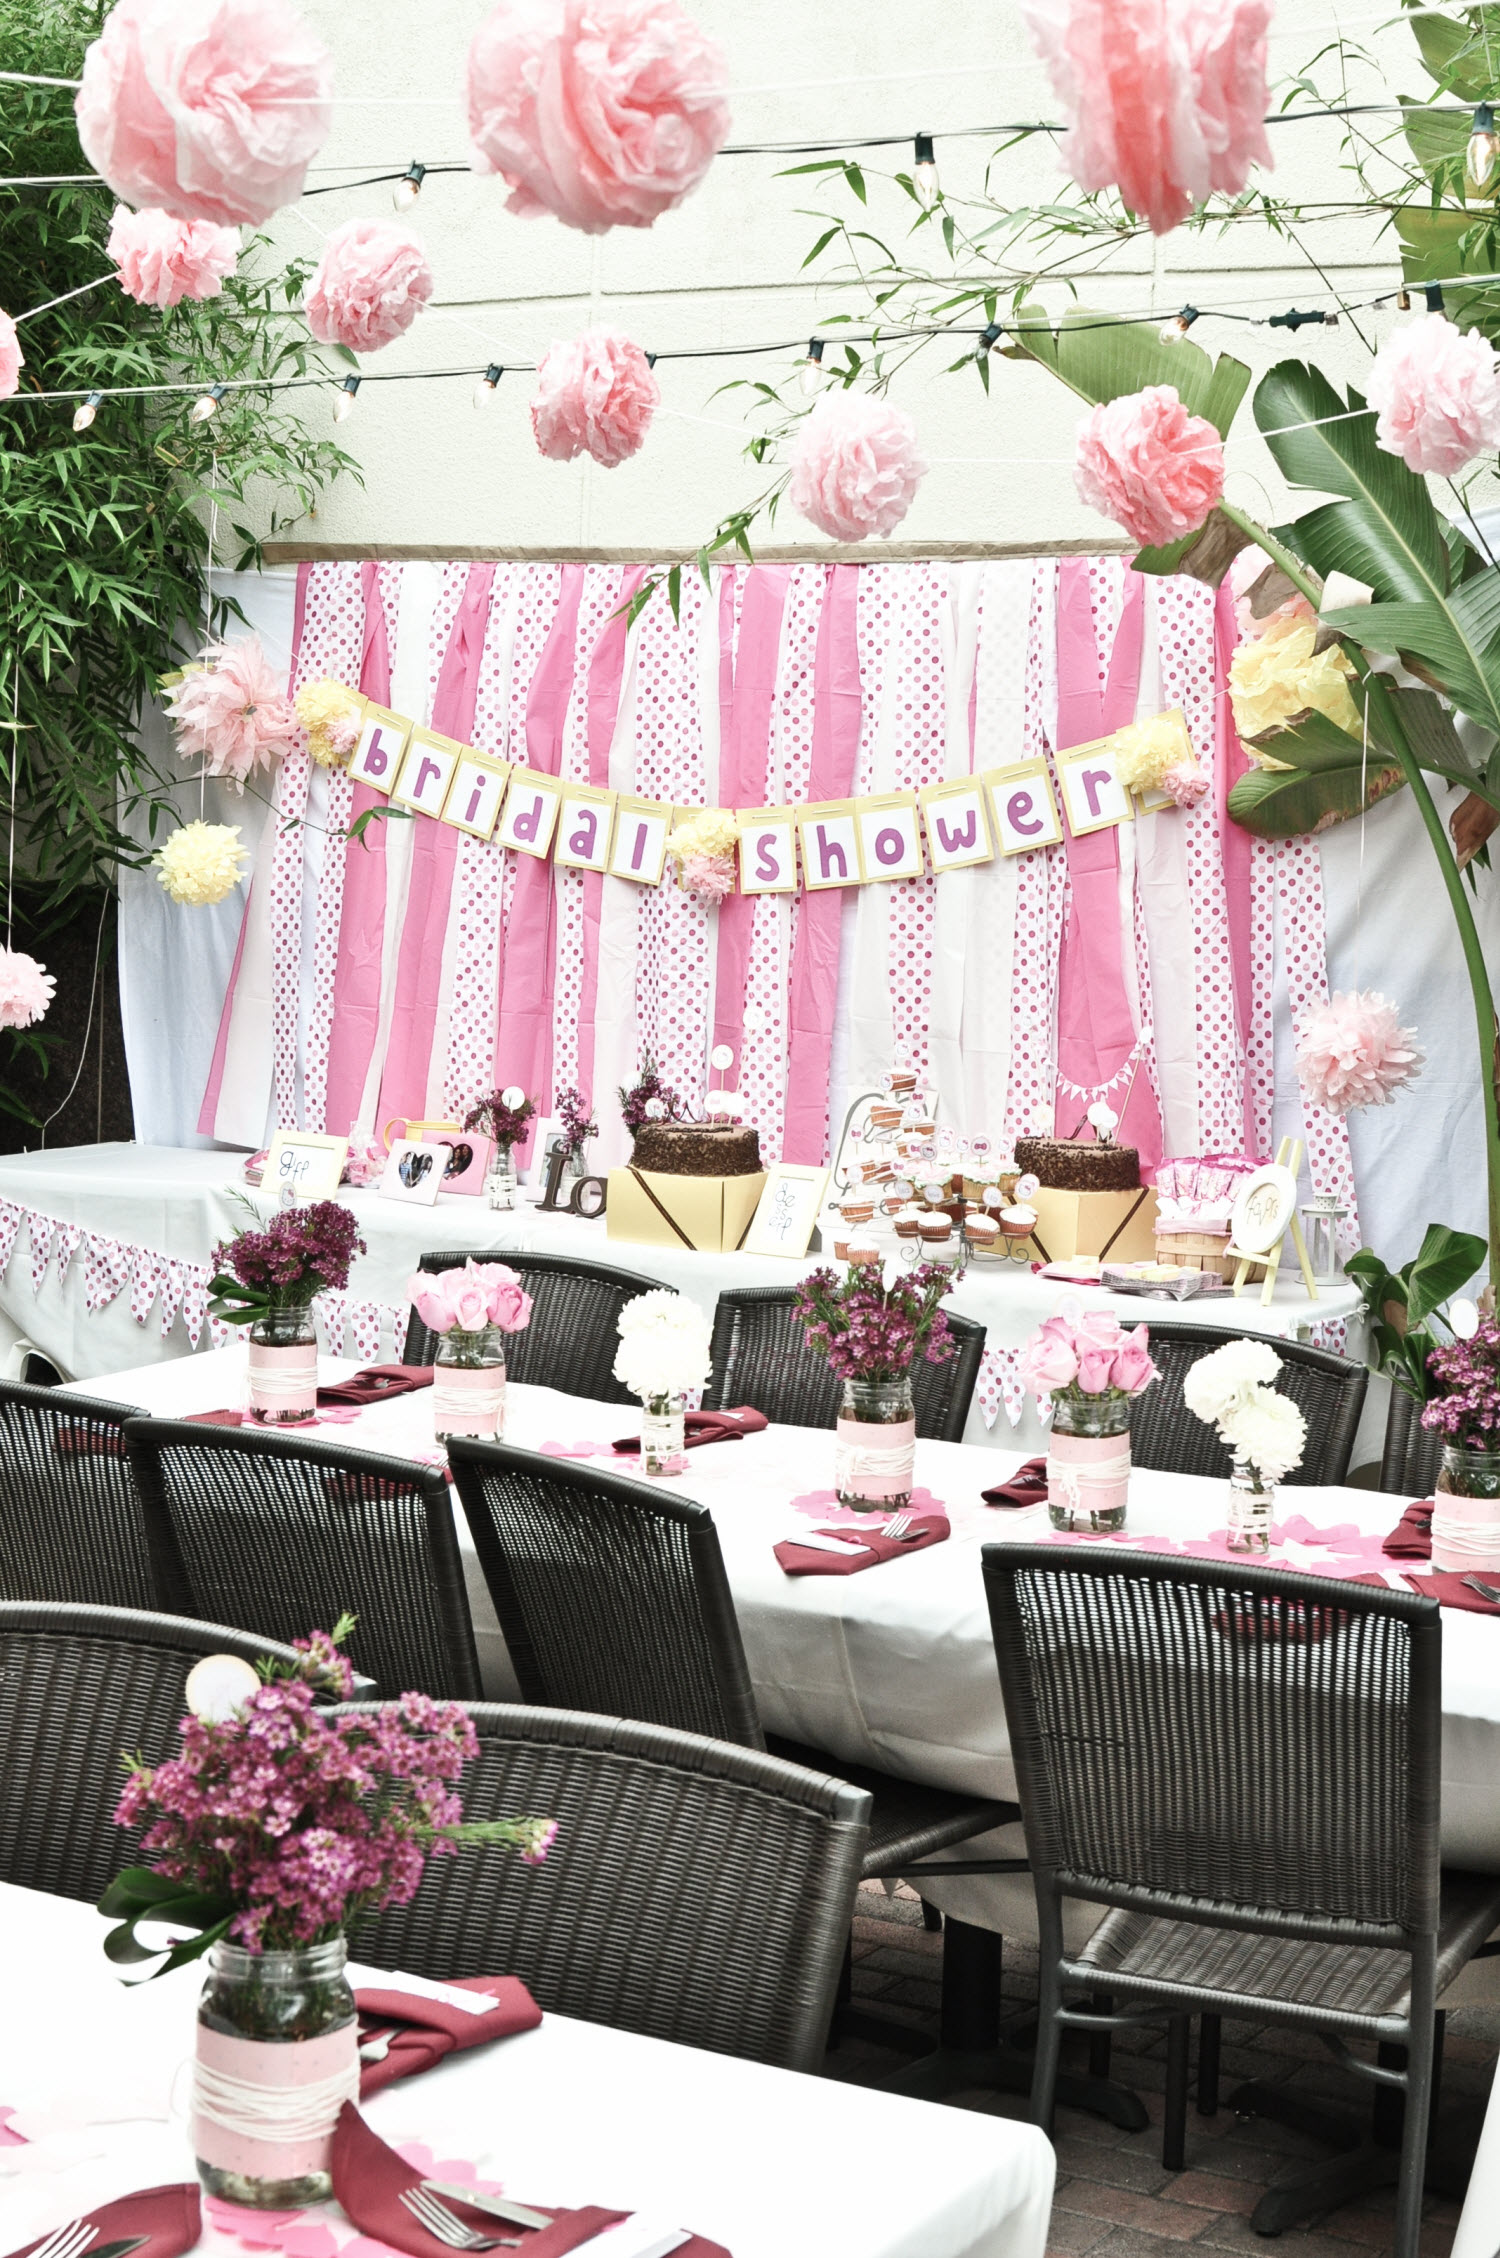 Bridal shower ideas romantic decoration - Wedding bridal shower ...